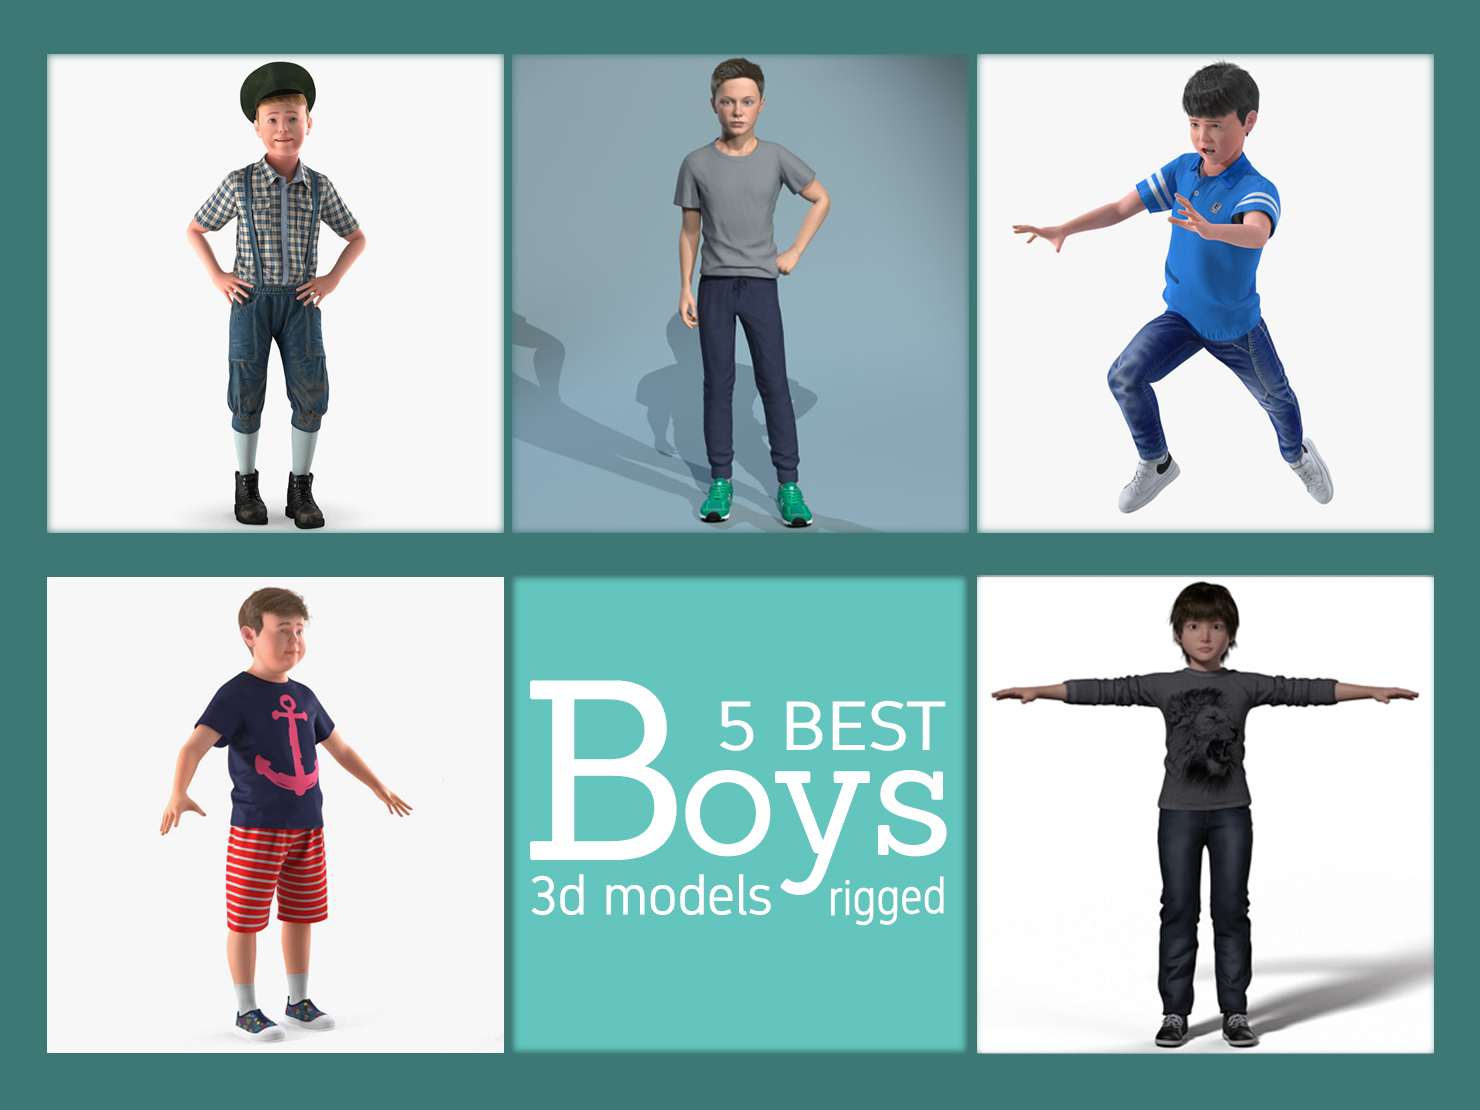 best boys 3d models rigged turbosquid